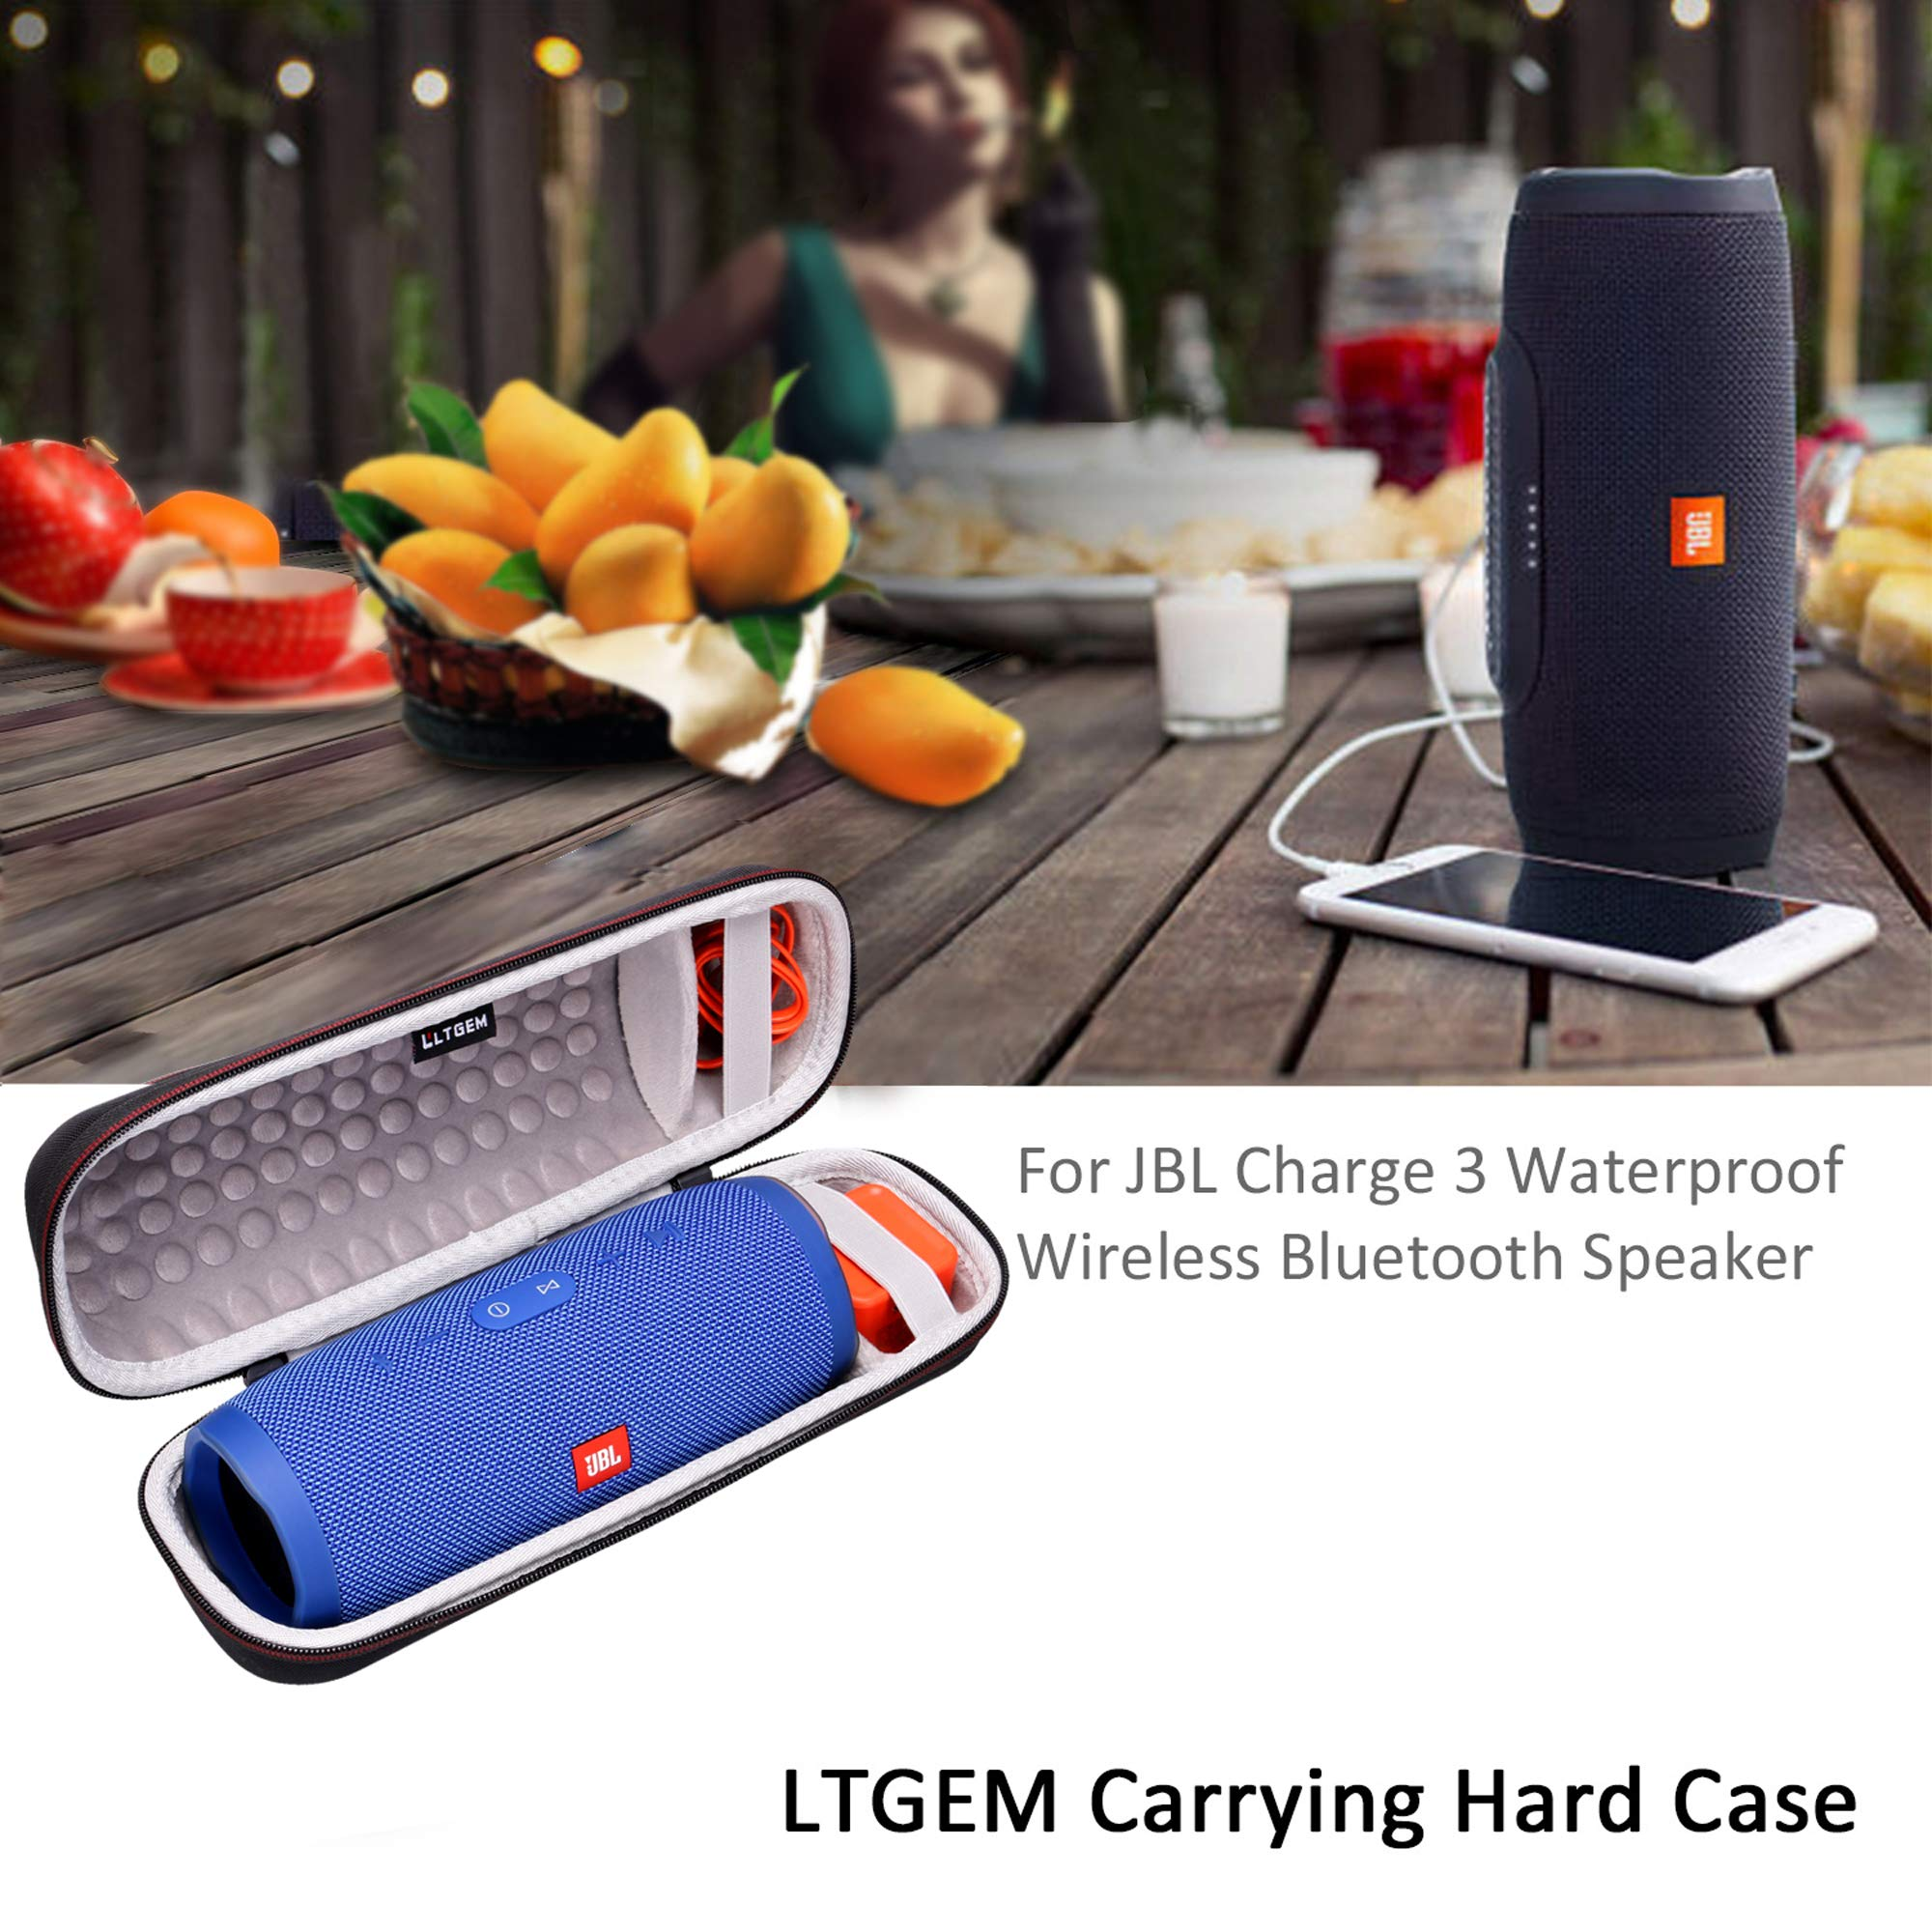 LTGEM Case for JBL Charge 3 Waterproof Portable Wireless Bluetooth Speaker. Fits USB Cable and Charger. [ Speaker is Not Include ] by LTGEM (Image #3)